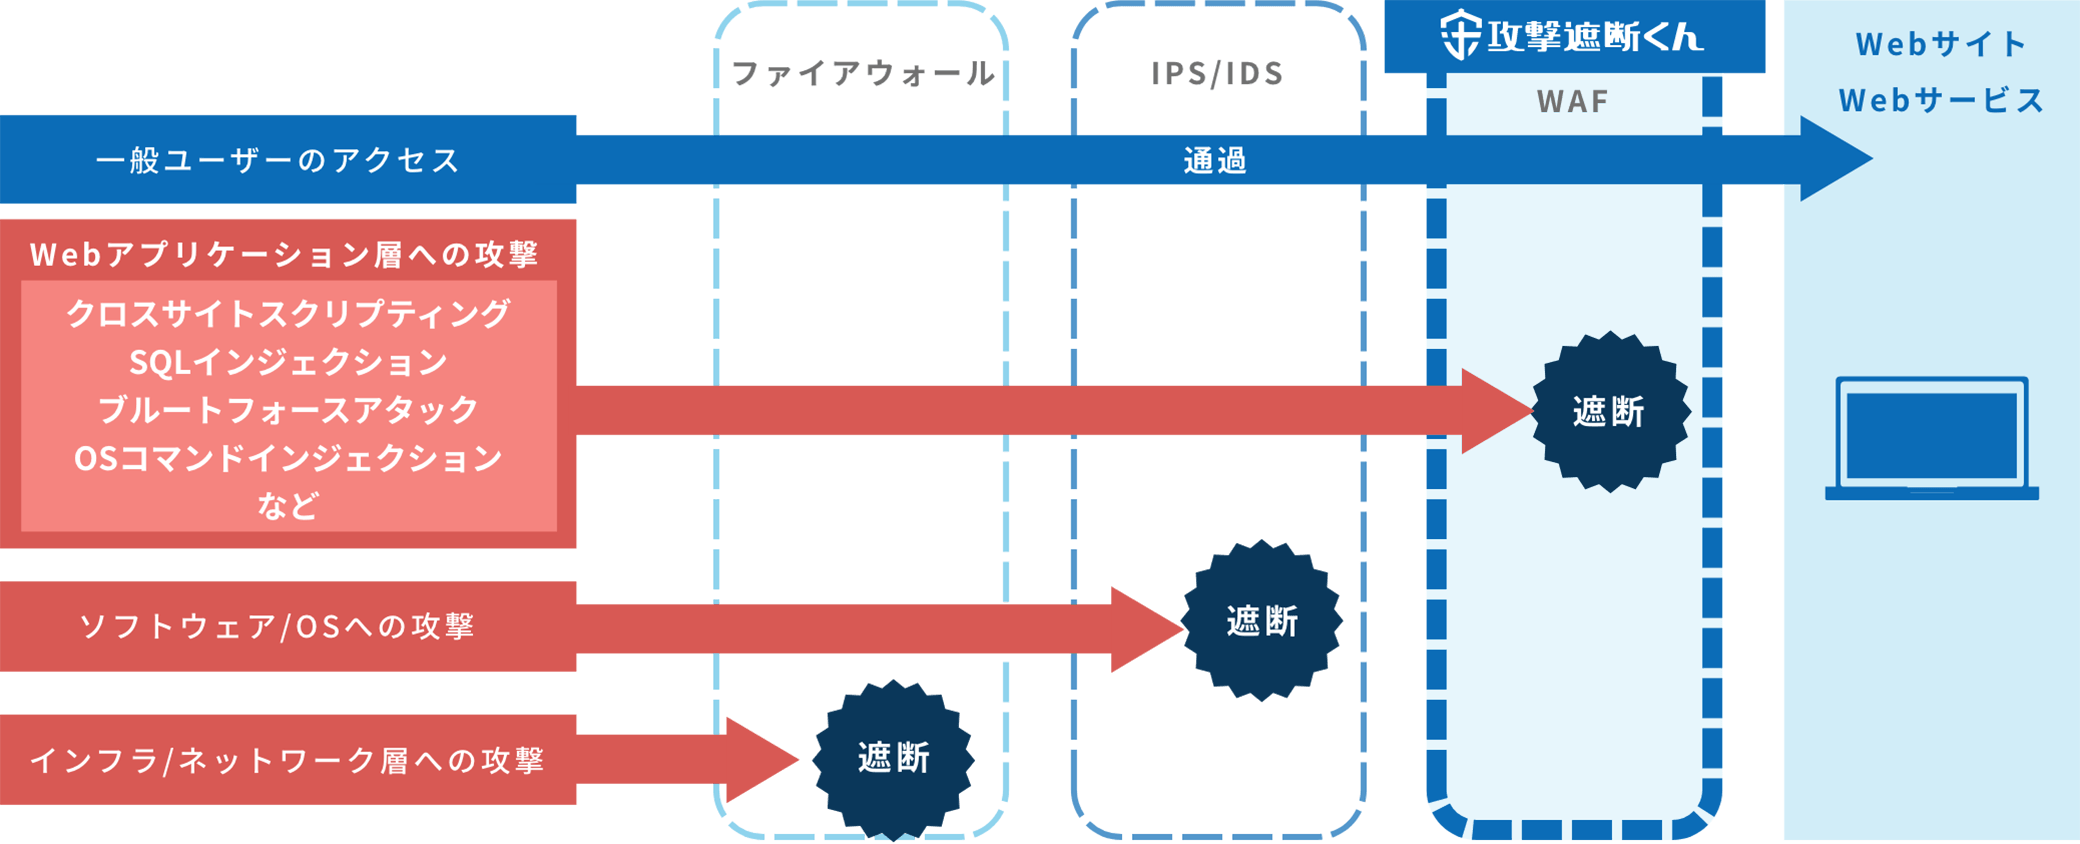 WAF(Web Application Firewall)とは